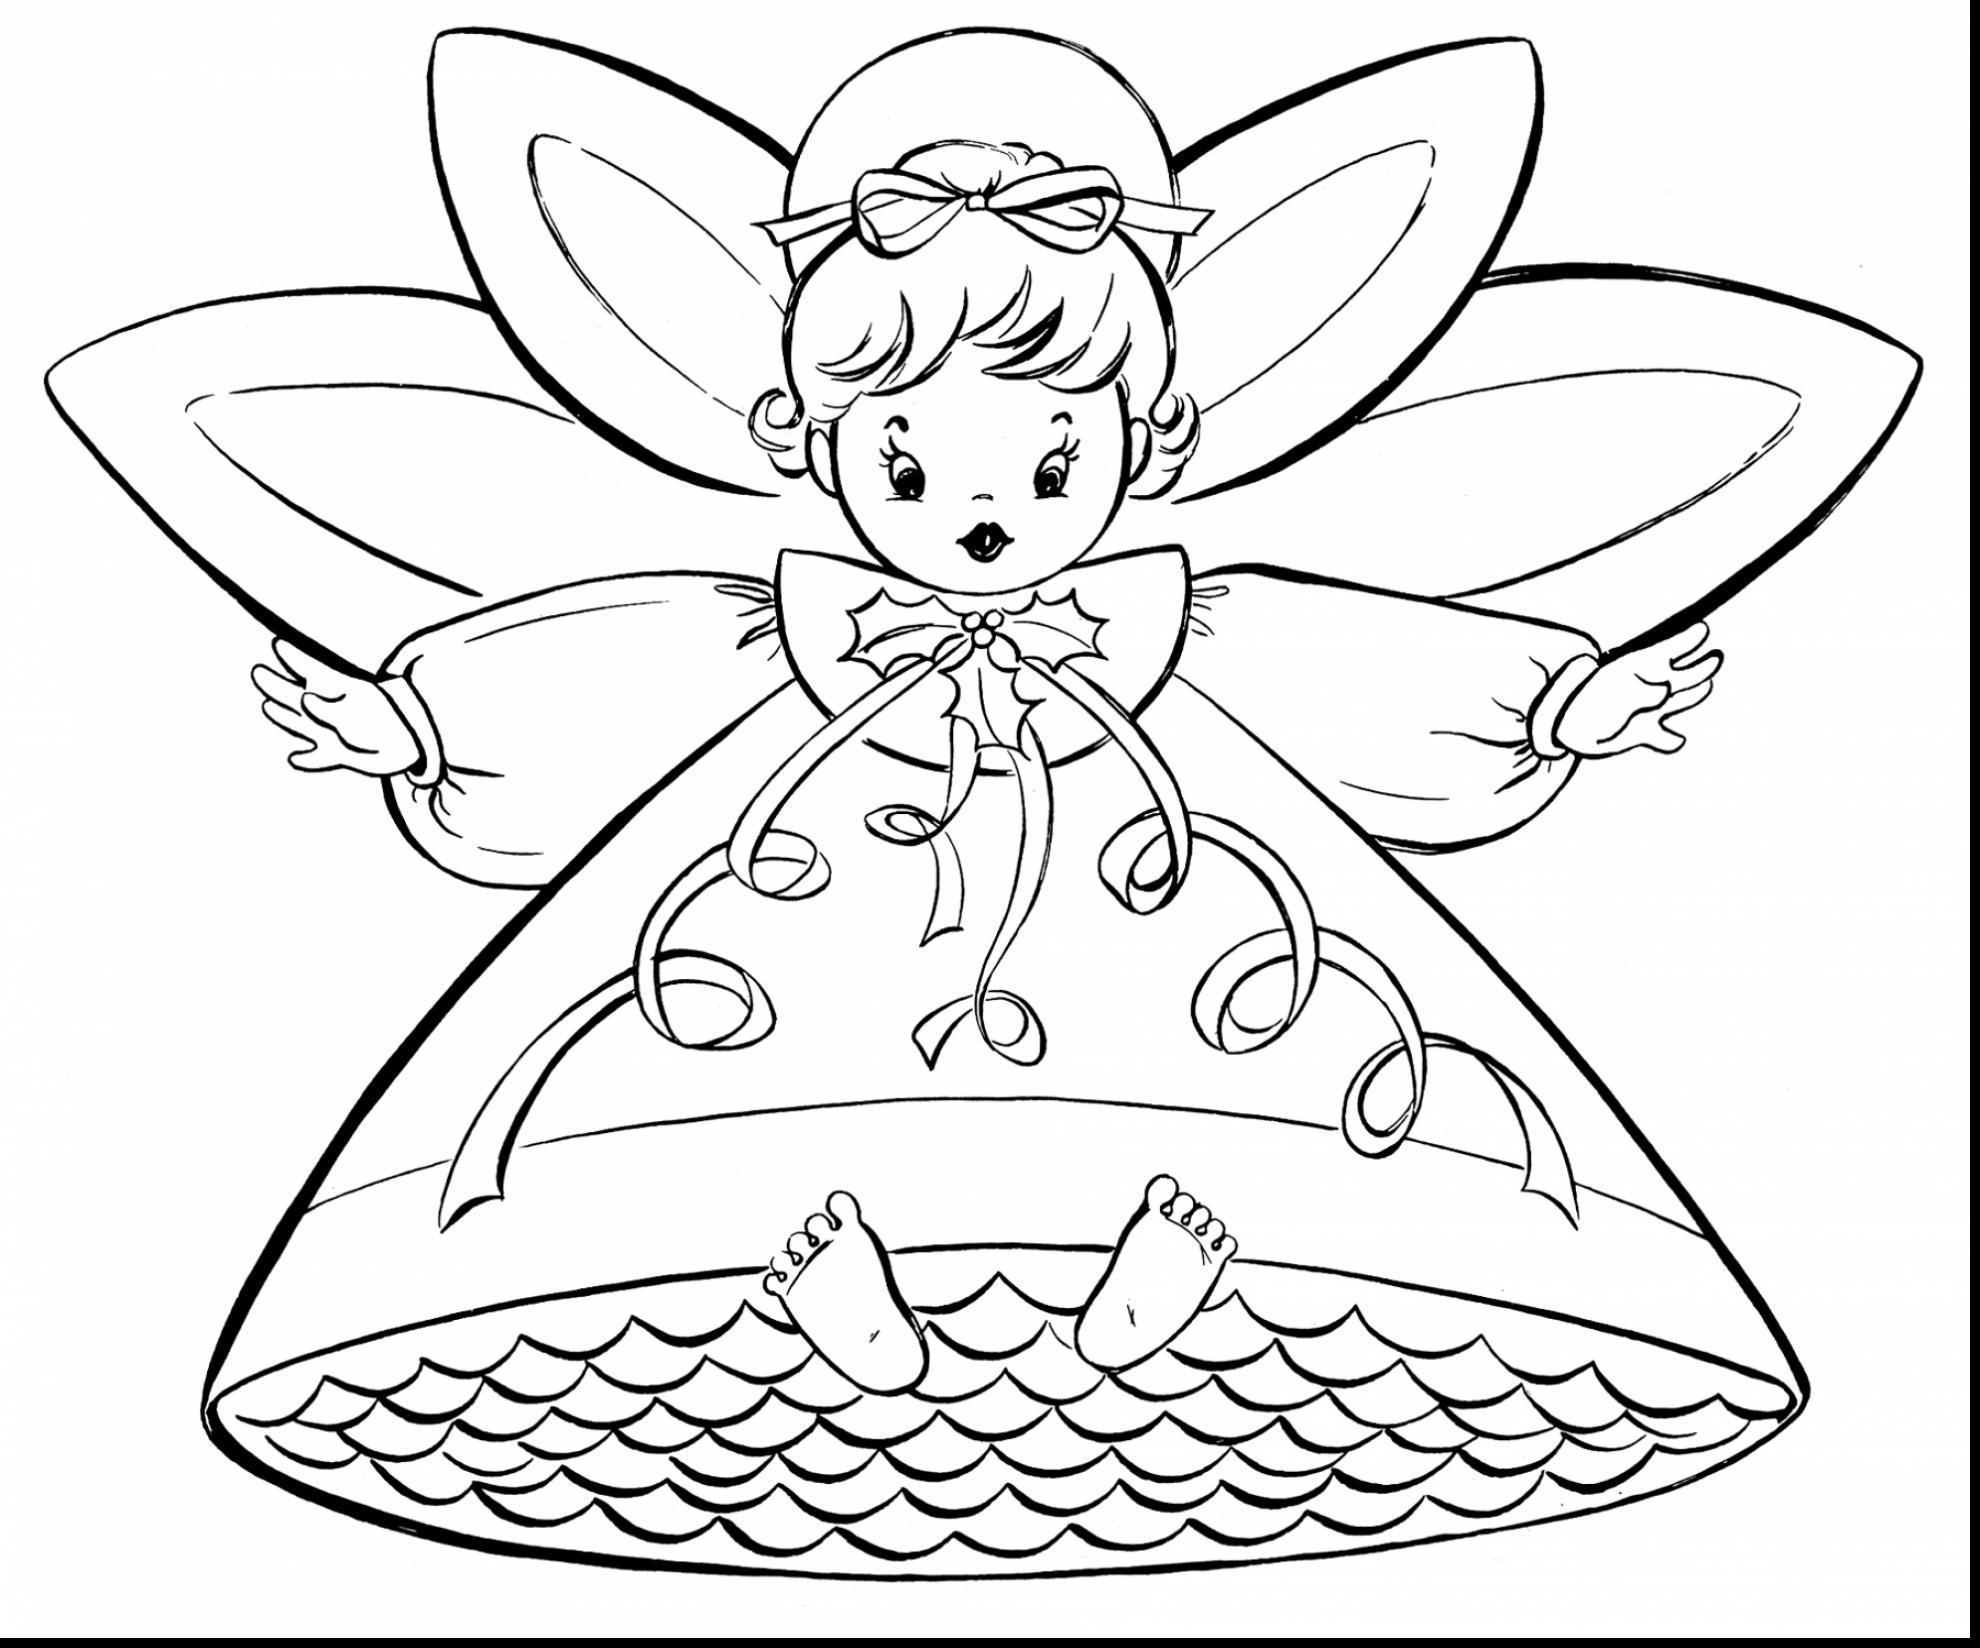 1980x1648 Christmas Themed Coloring Pages